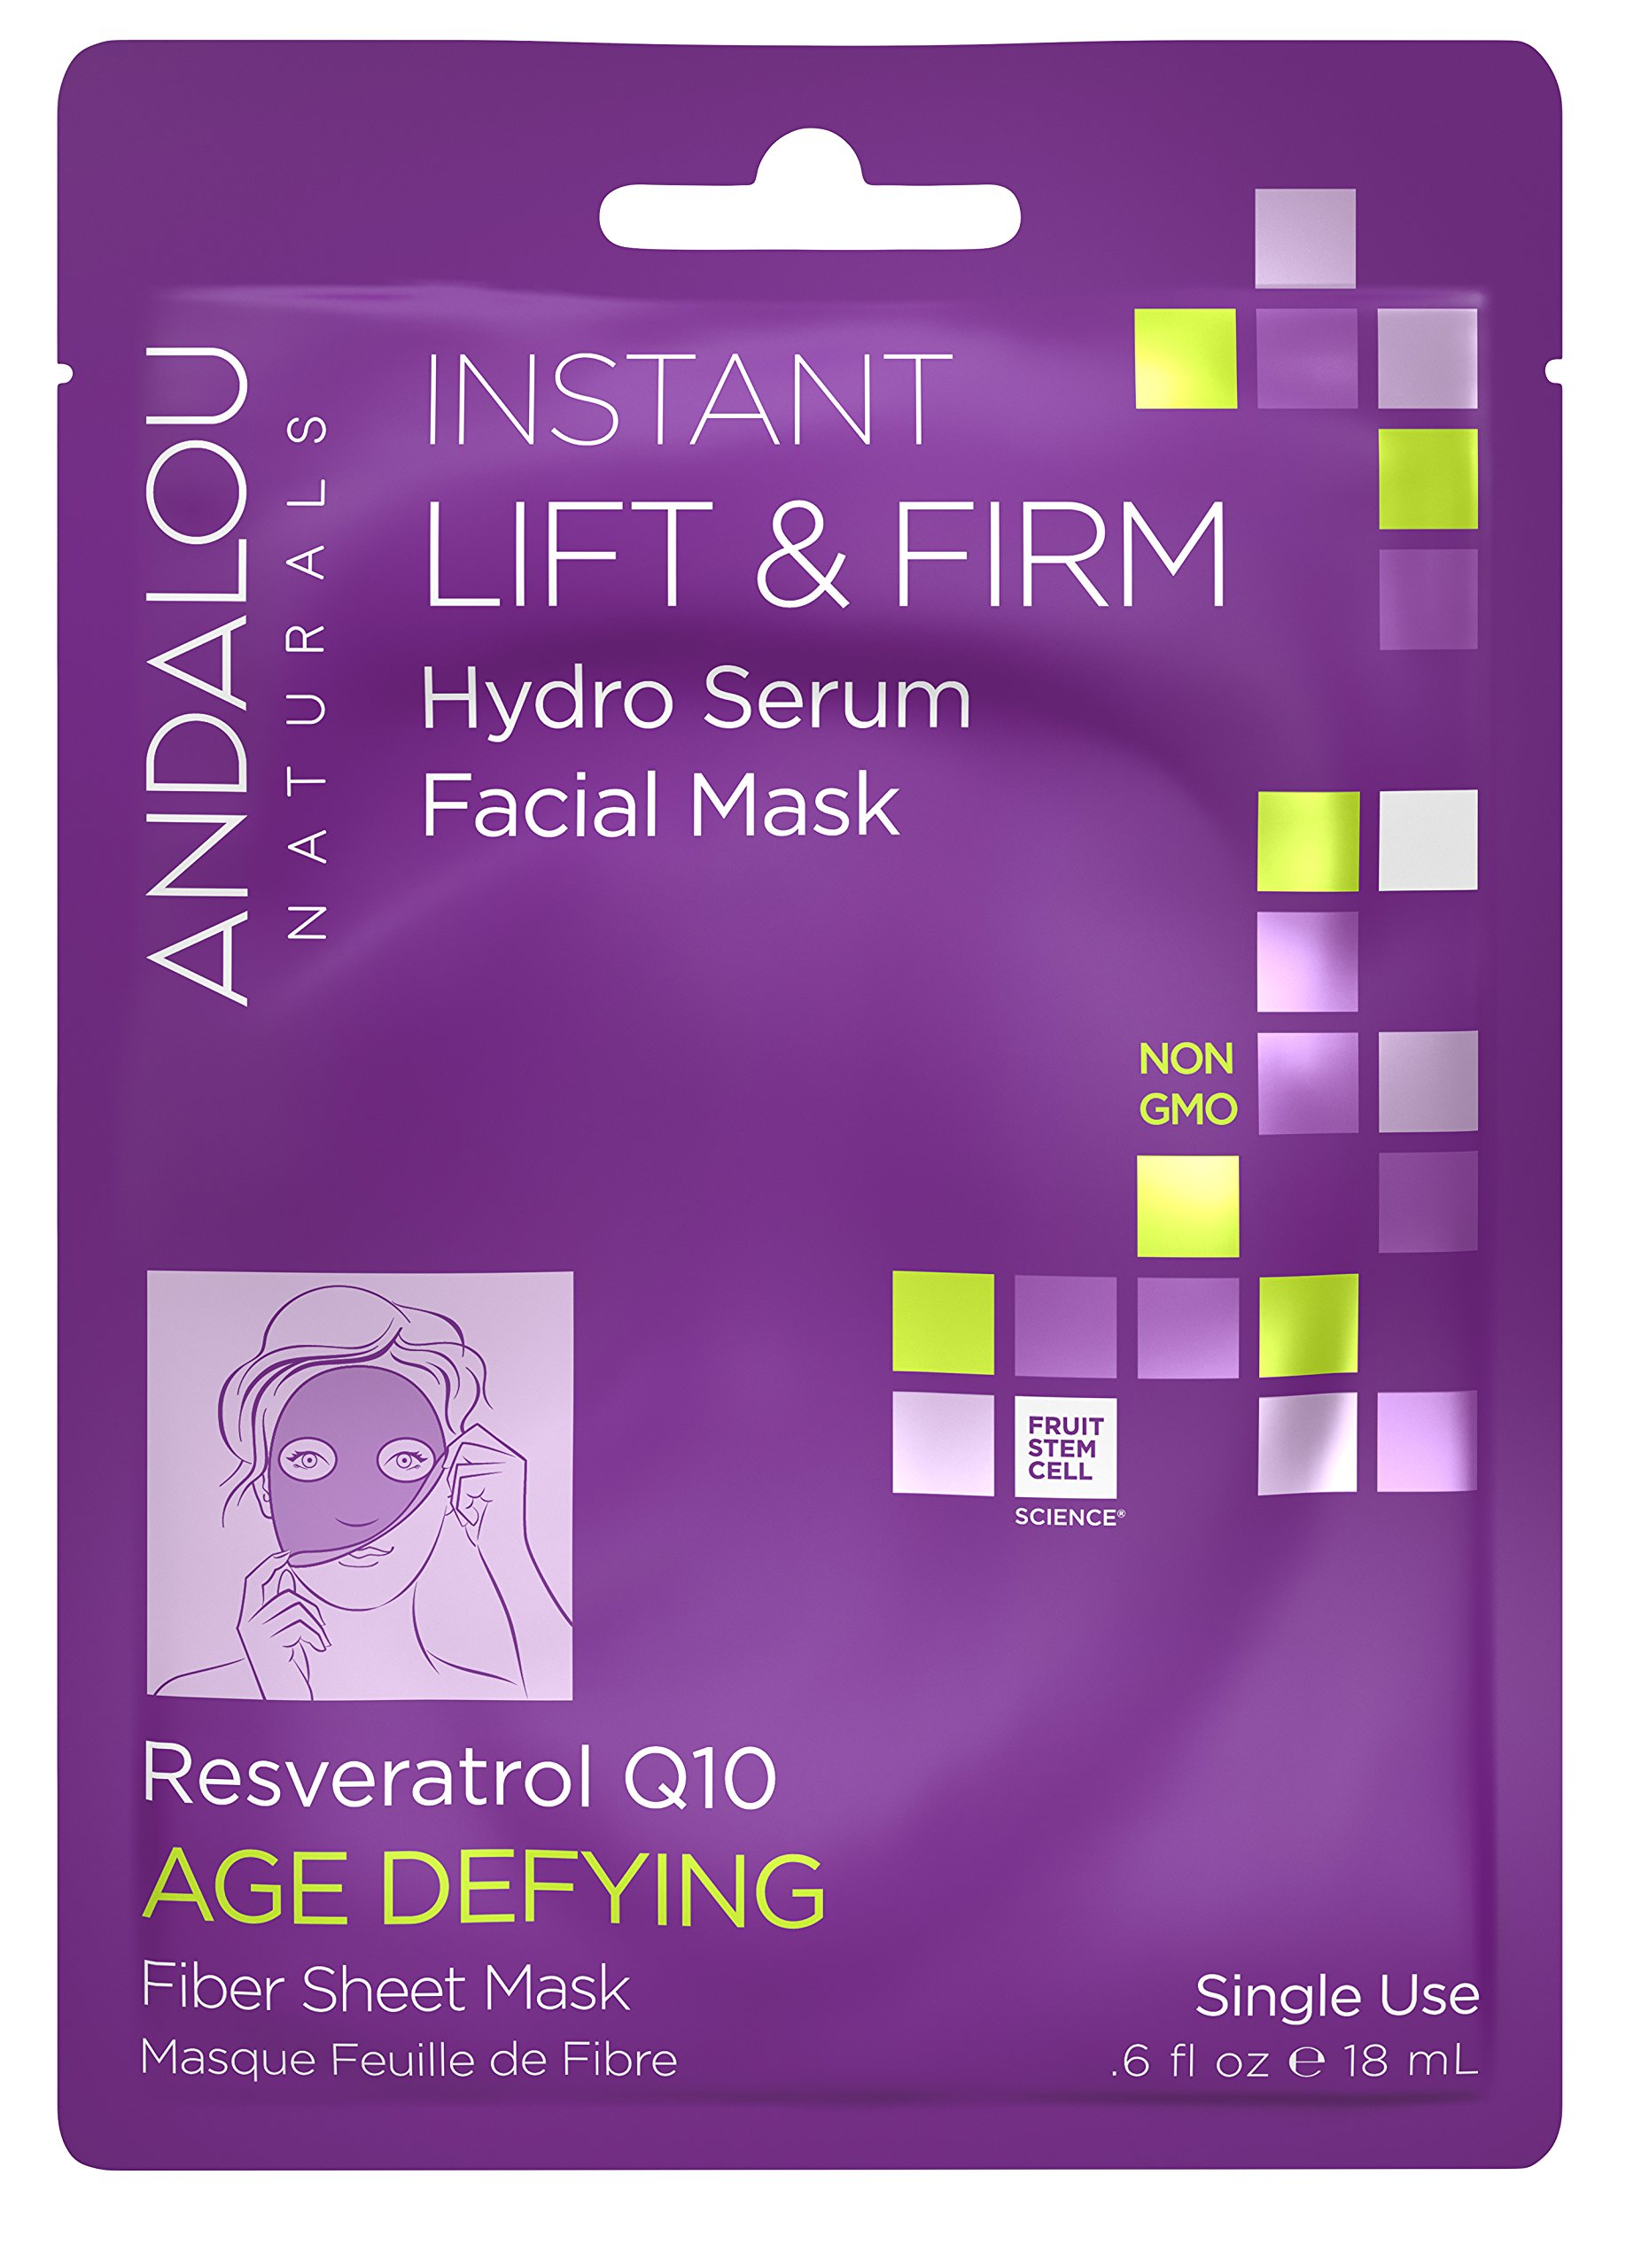 Andalou Naturals Instant Lift & Firm Hydro Serum Facial Mask, 0.6 fl. oz, Single Use Sheet Facial Mask with Resveratrol Q10, Hydrates, Firms, Smooths, and Plumps for Younger, Healthy Looking Skin